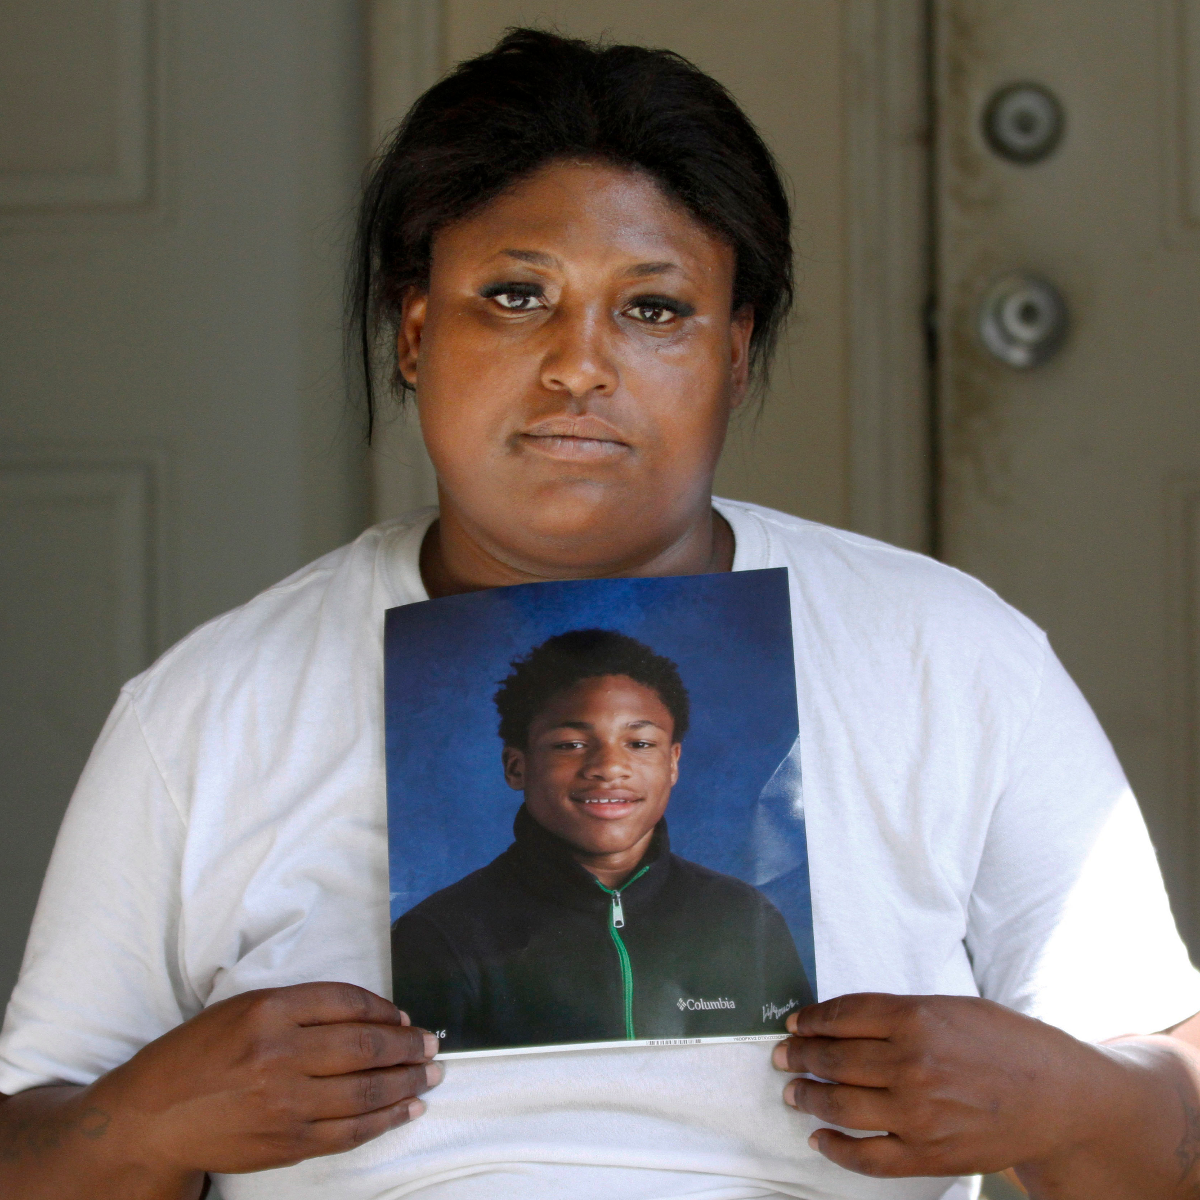 Monique Causey holds a portrait of her 14-year-old Malik, who was shot on Aug. 21, 2016, at her home in Chicago. August was the deadliest month for Chicago homicides in two decades. AP Photo/Tae-Gyun Kim.